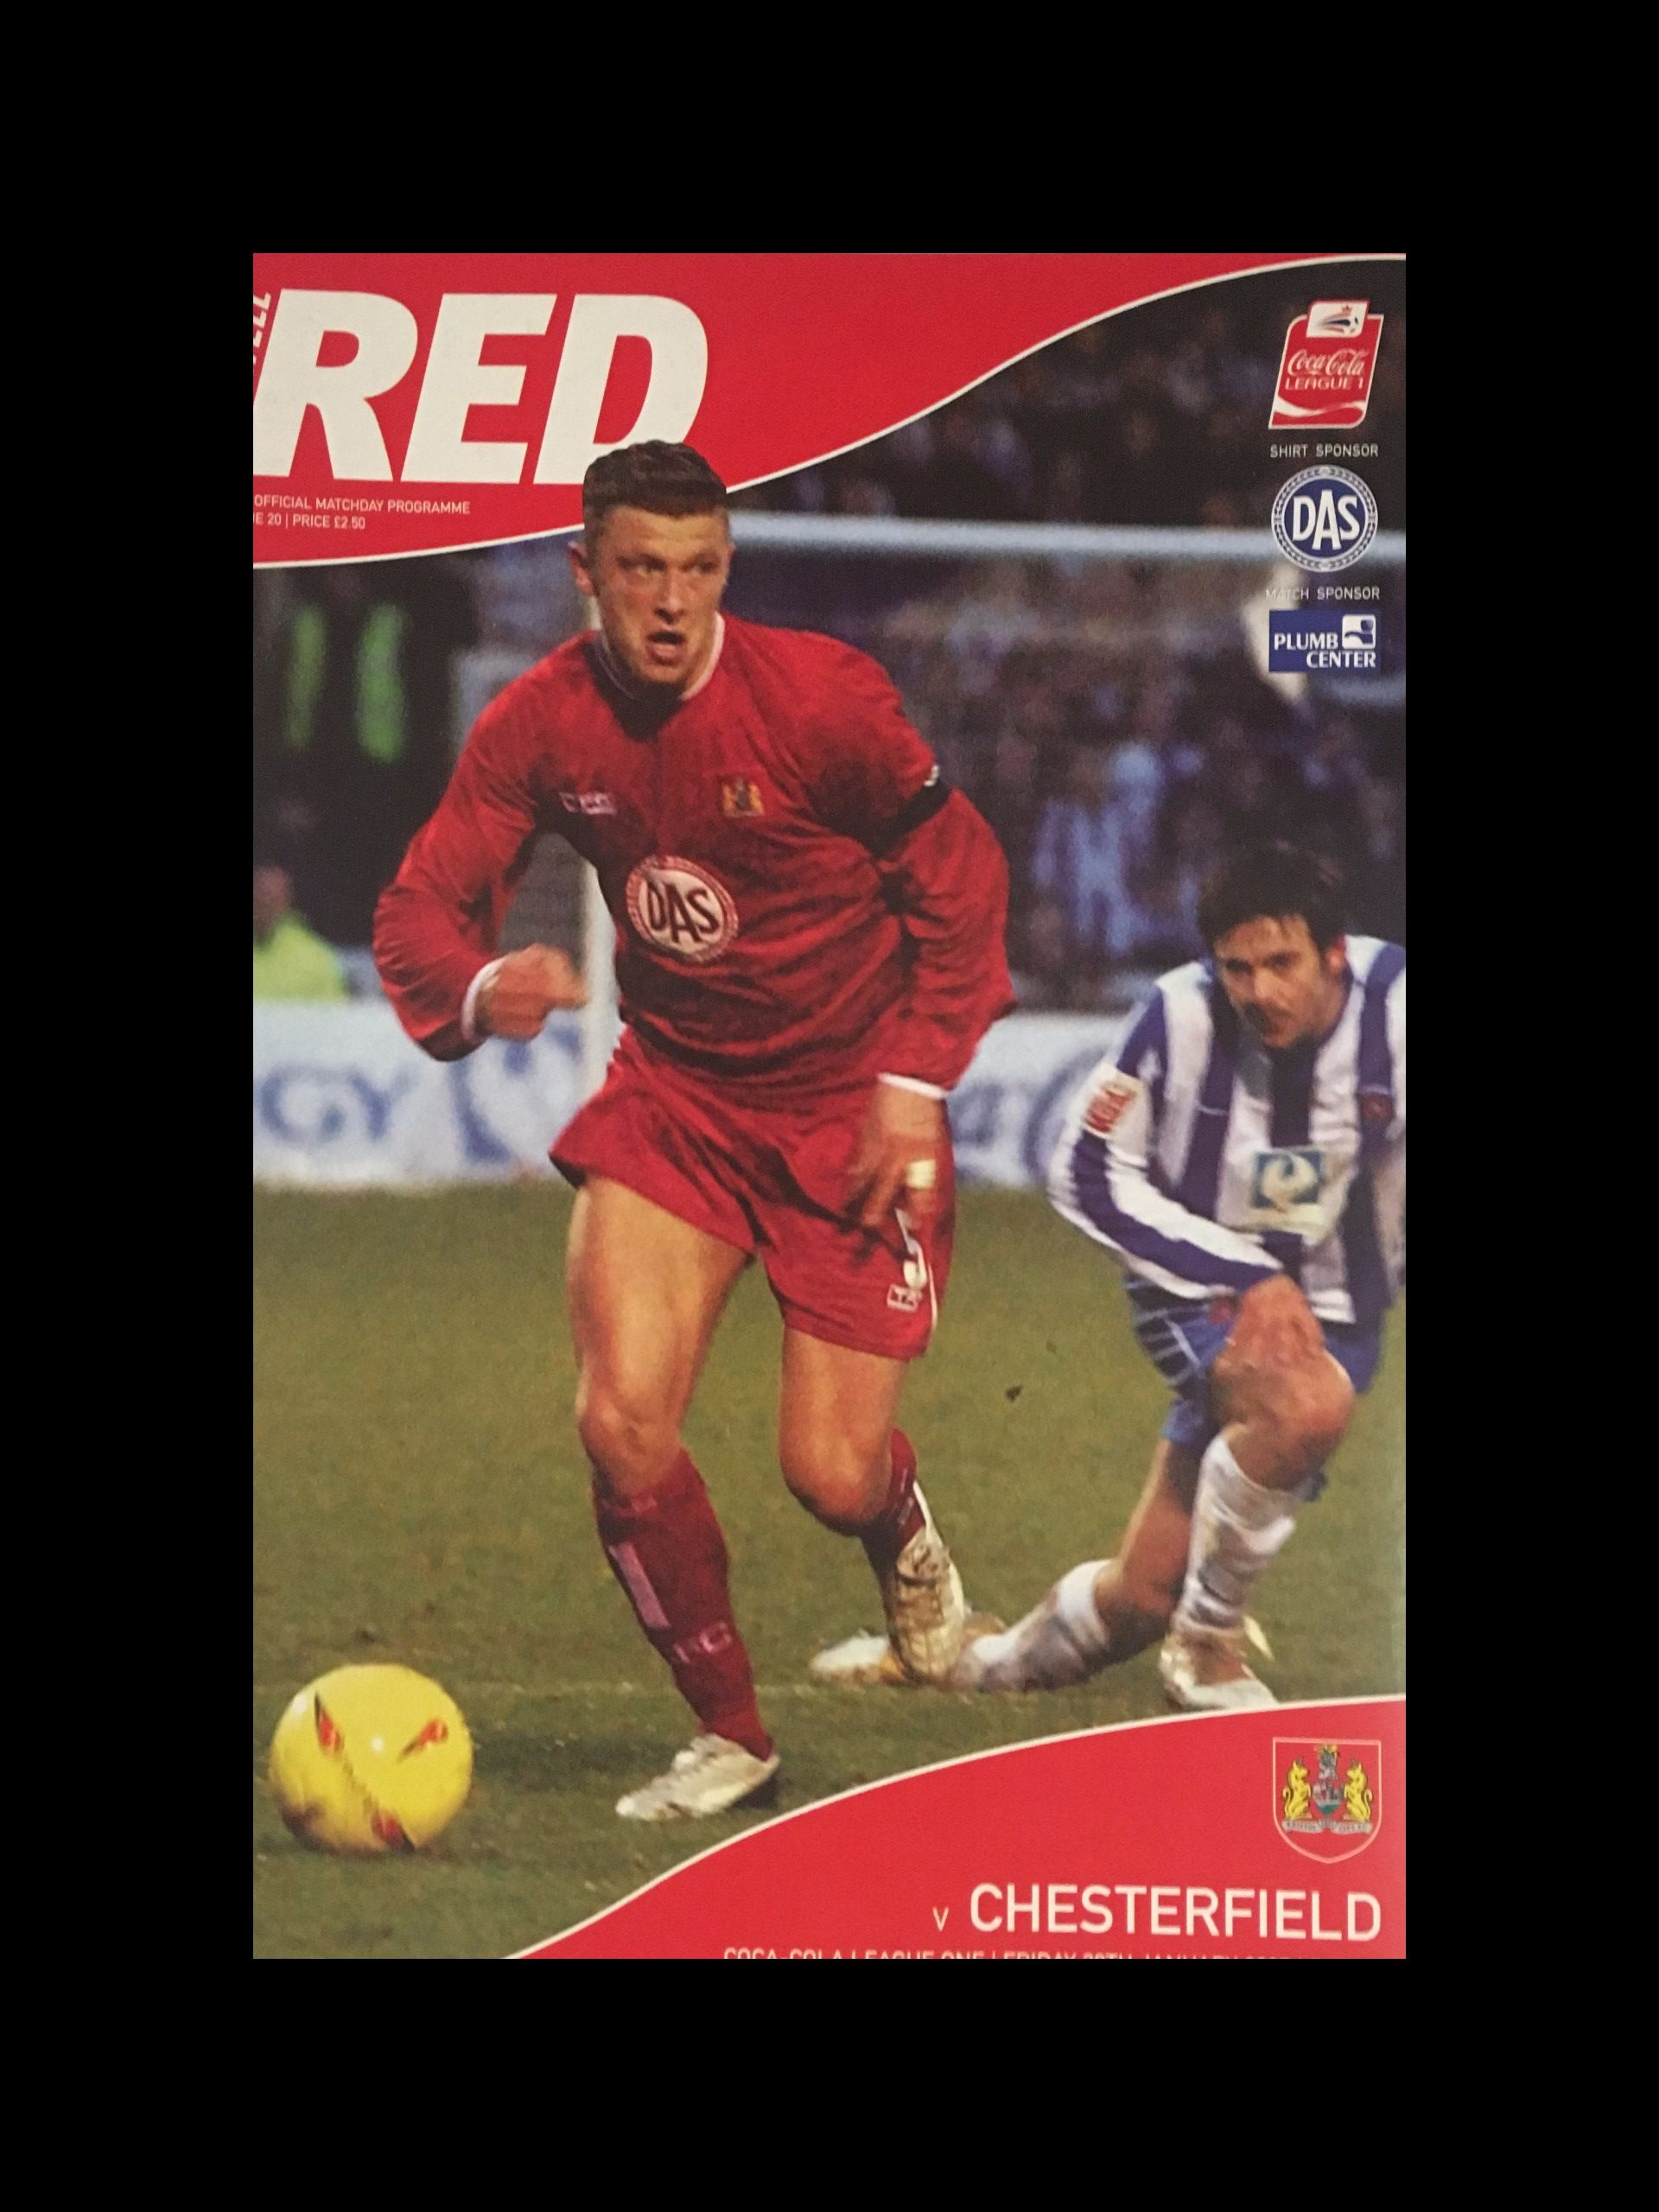 Bristol City v Chesterfield 28-01-2005 Programme